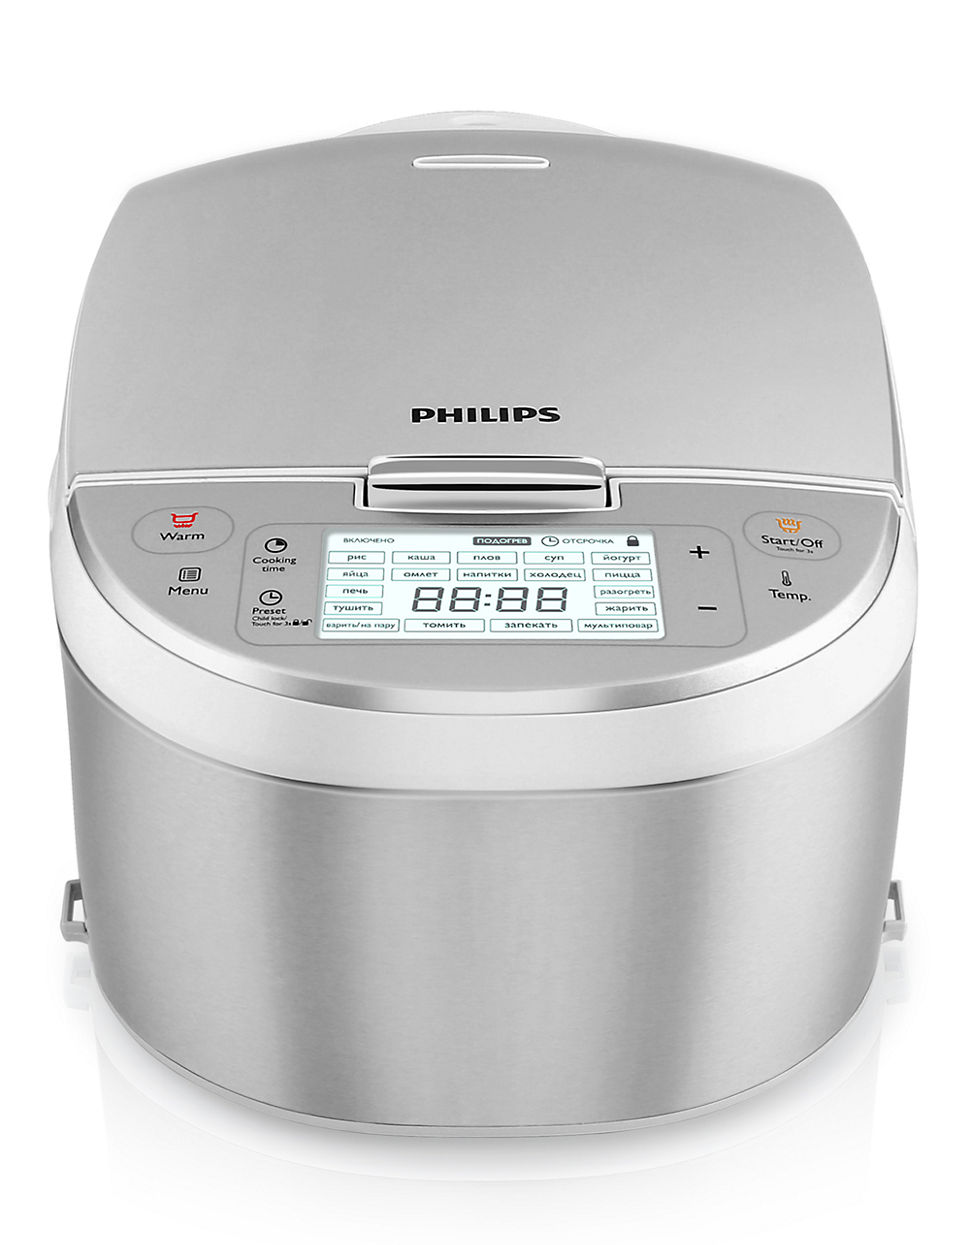 Small Appliance Sales Sale Small Appliances Appliances Home Hudsons Bay